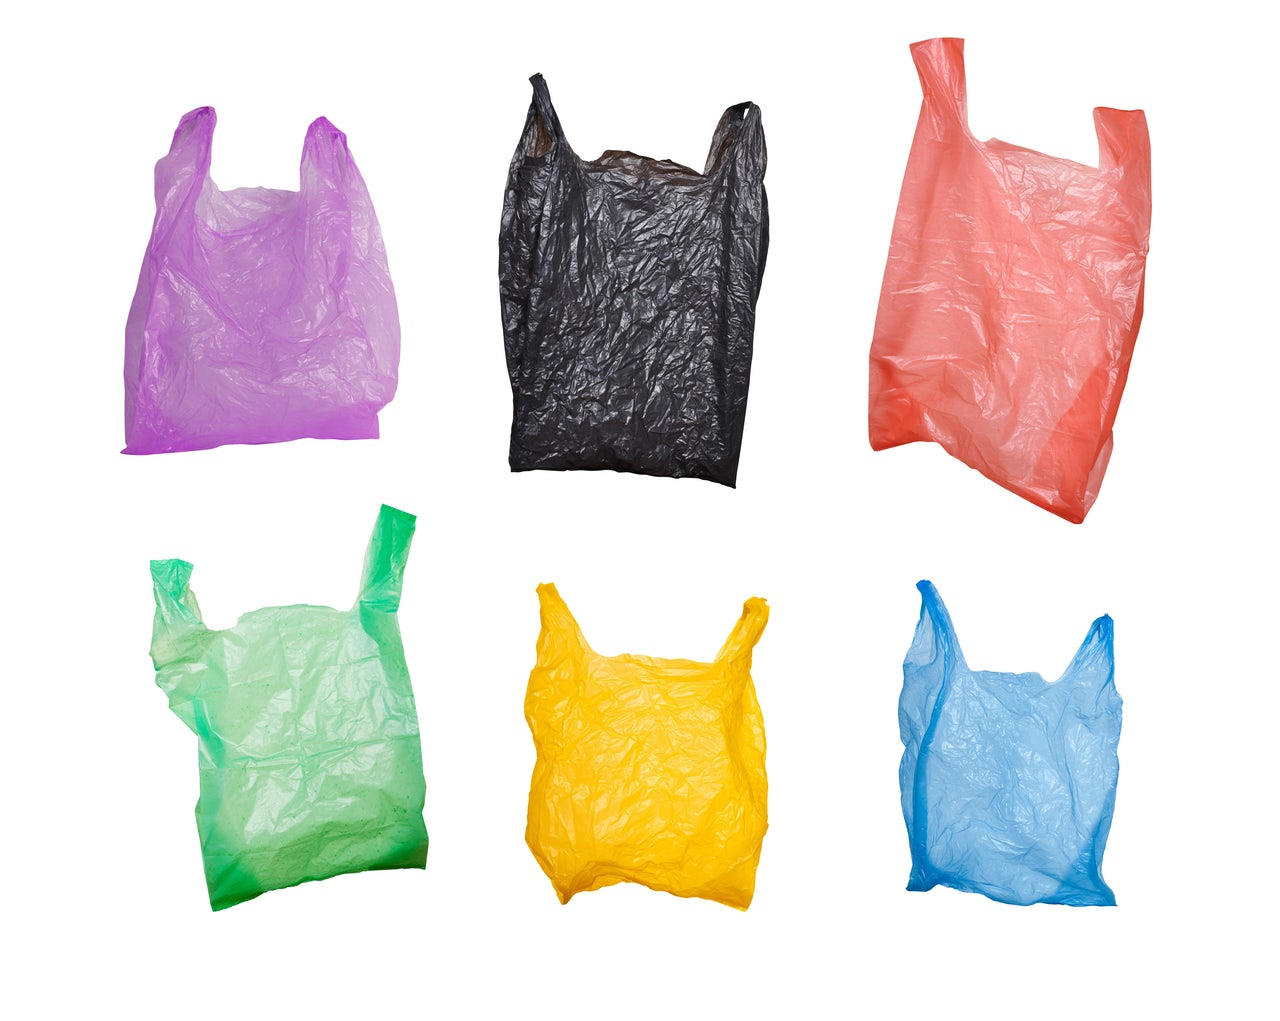 How New York Dropped The Ball On Plastic Bags